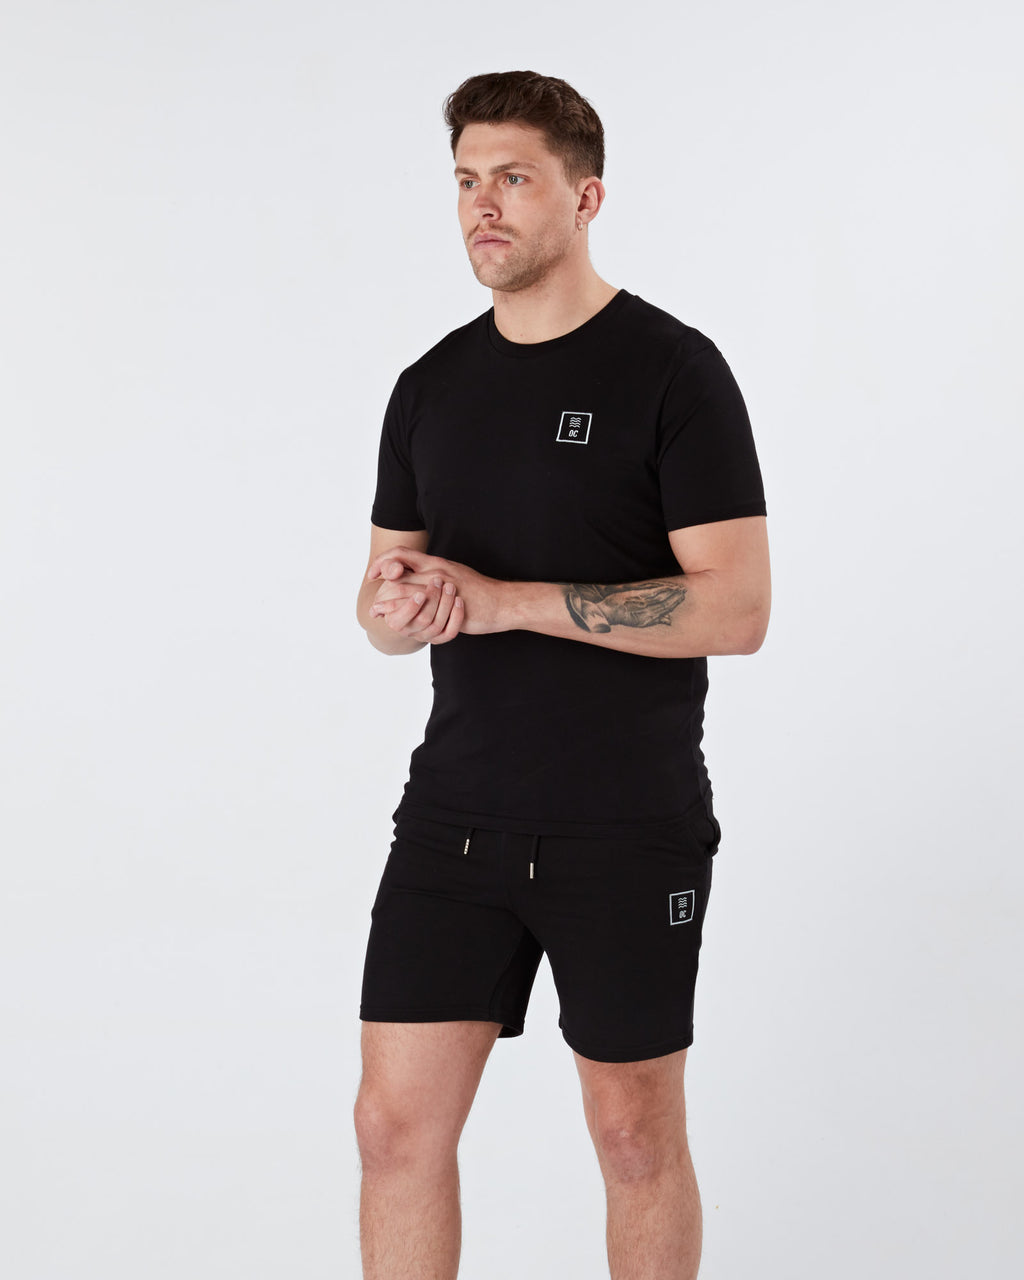 OC Lux Shorts - Black